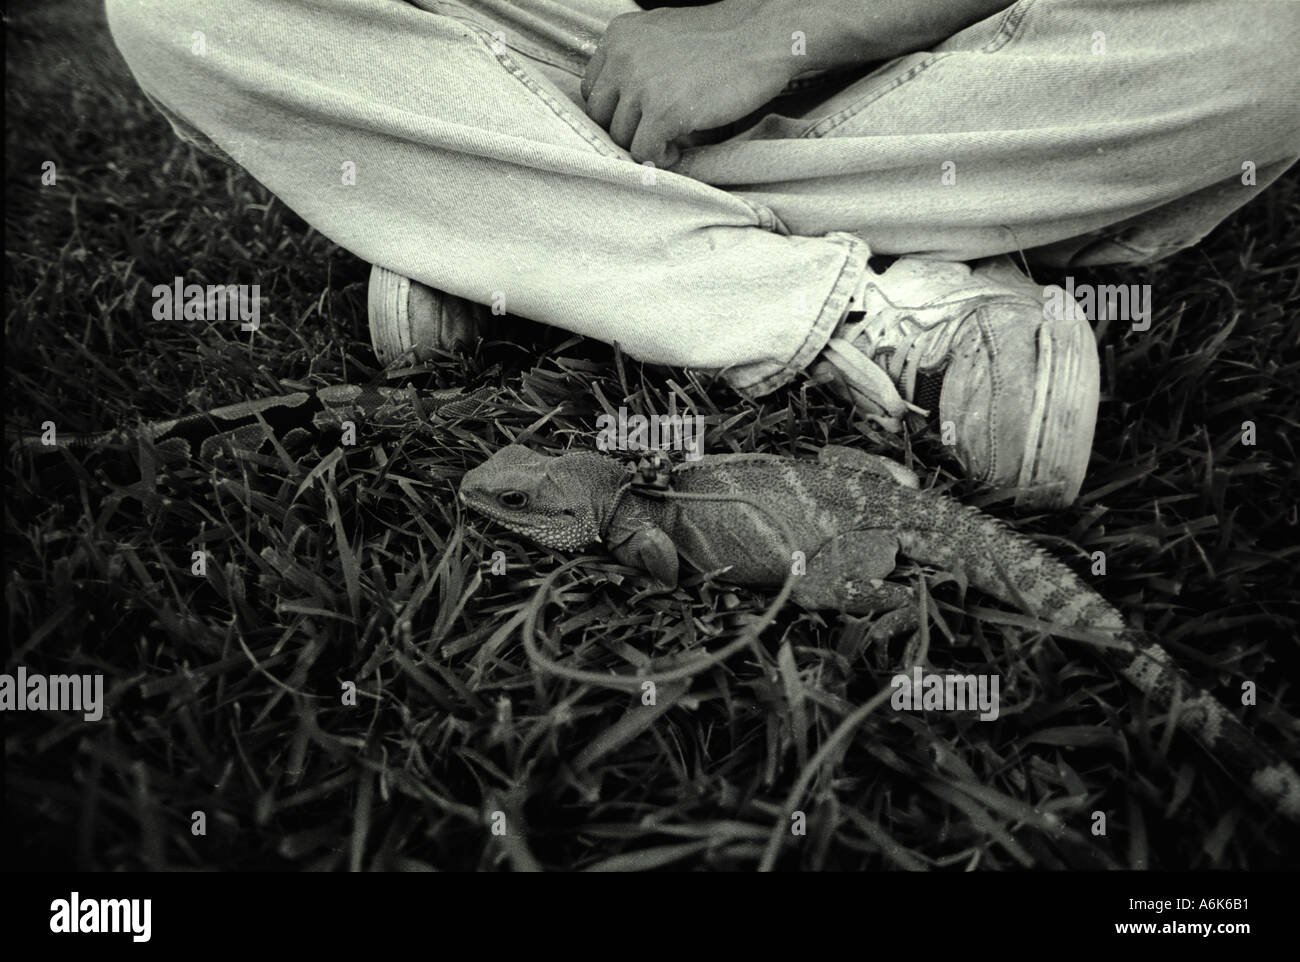 Young man and his pet lizard with a leash in a park. generation x man hangs out in a park with his pet monitor lizard - Stock Image